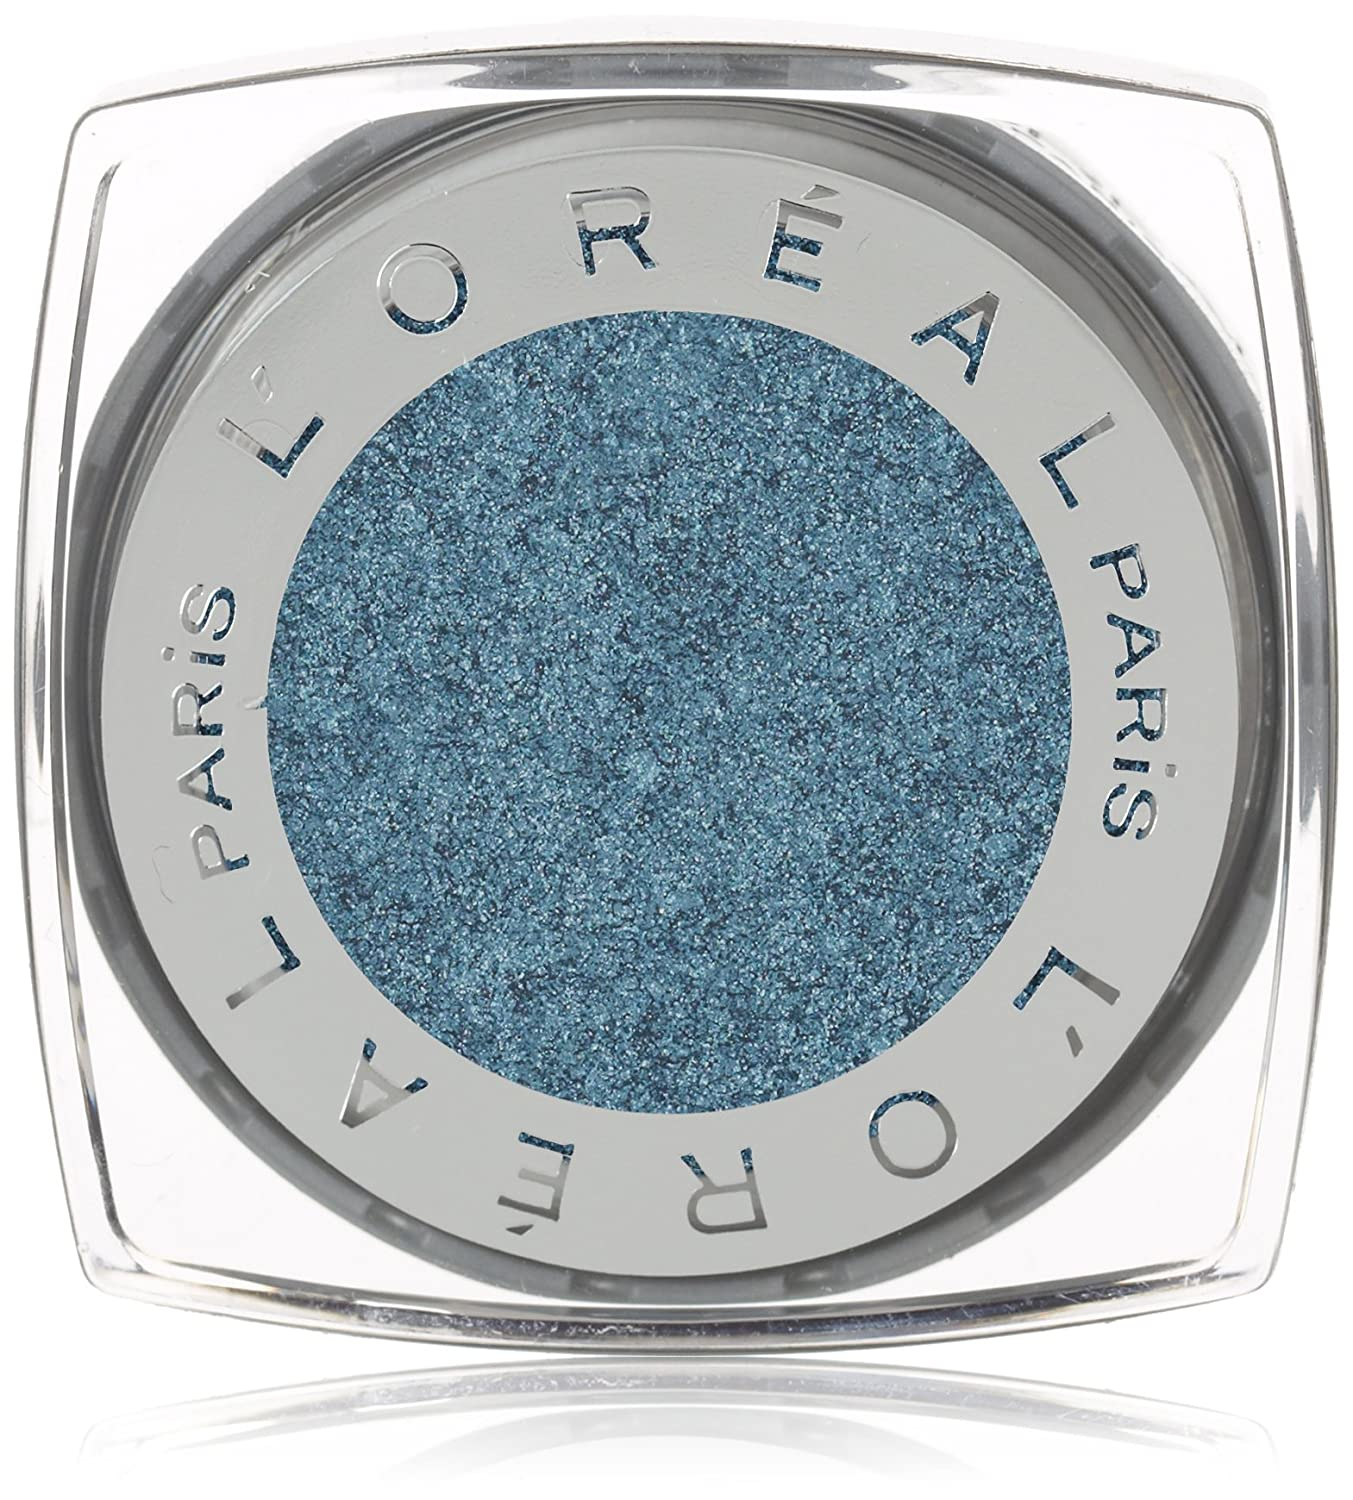 Amazon L Oréal Paris Makeup Infallible 24HR Shadow luxurious powder cream eyeshadow high pigment color velvety formula creamy texture